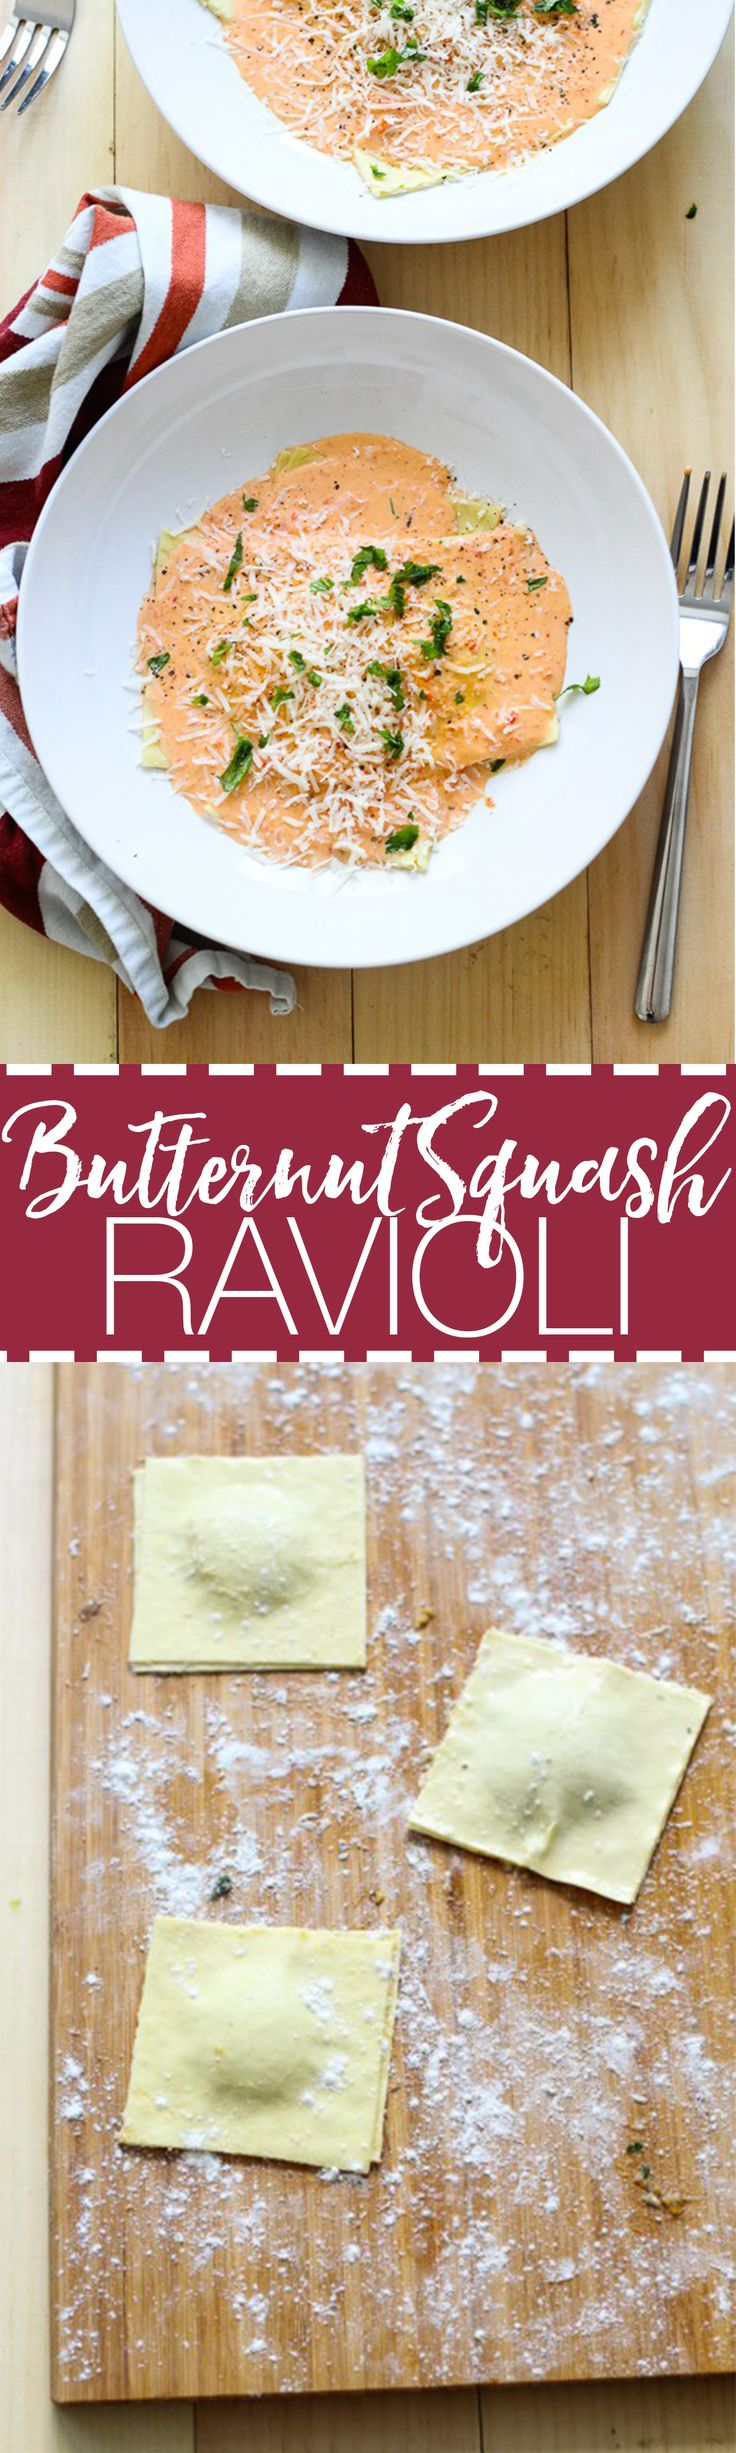 This Homemade Butternut Squash Ravioli is made with lasagne sheets in a Red Pepper Cream Sauce